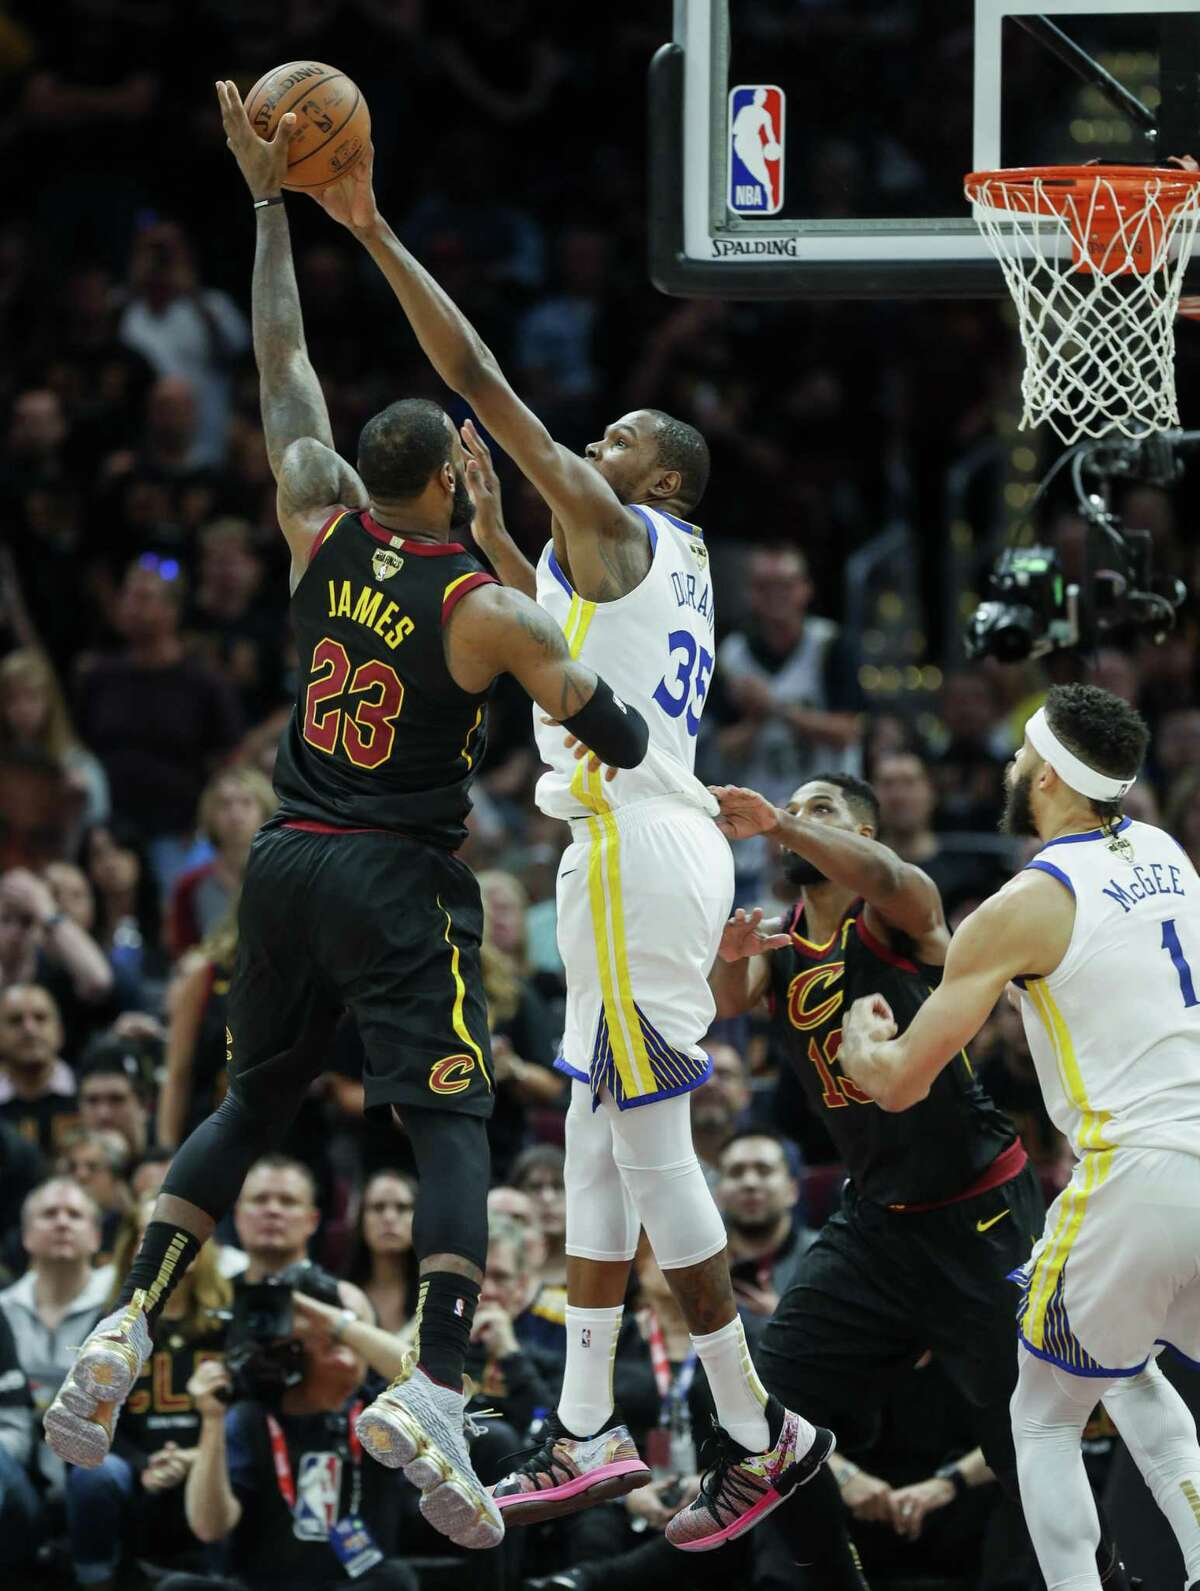 Golden State Warriors' Kevin Durant blocks a Cleveland Cavaliers' LeBron James shot in the third quarter during game 3 of The NBA Finals between the Golden State Warriors and the Cleveland Cavaliers at Oracle Arena on Wednesday, June 6, 2018 in Cleveland, Ohio.